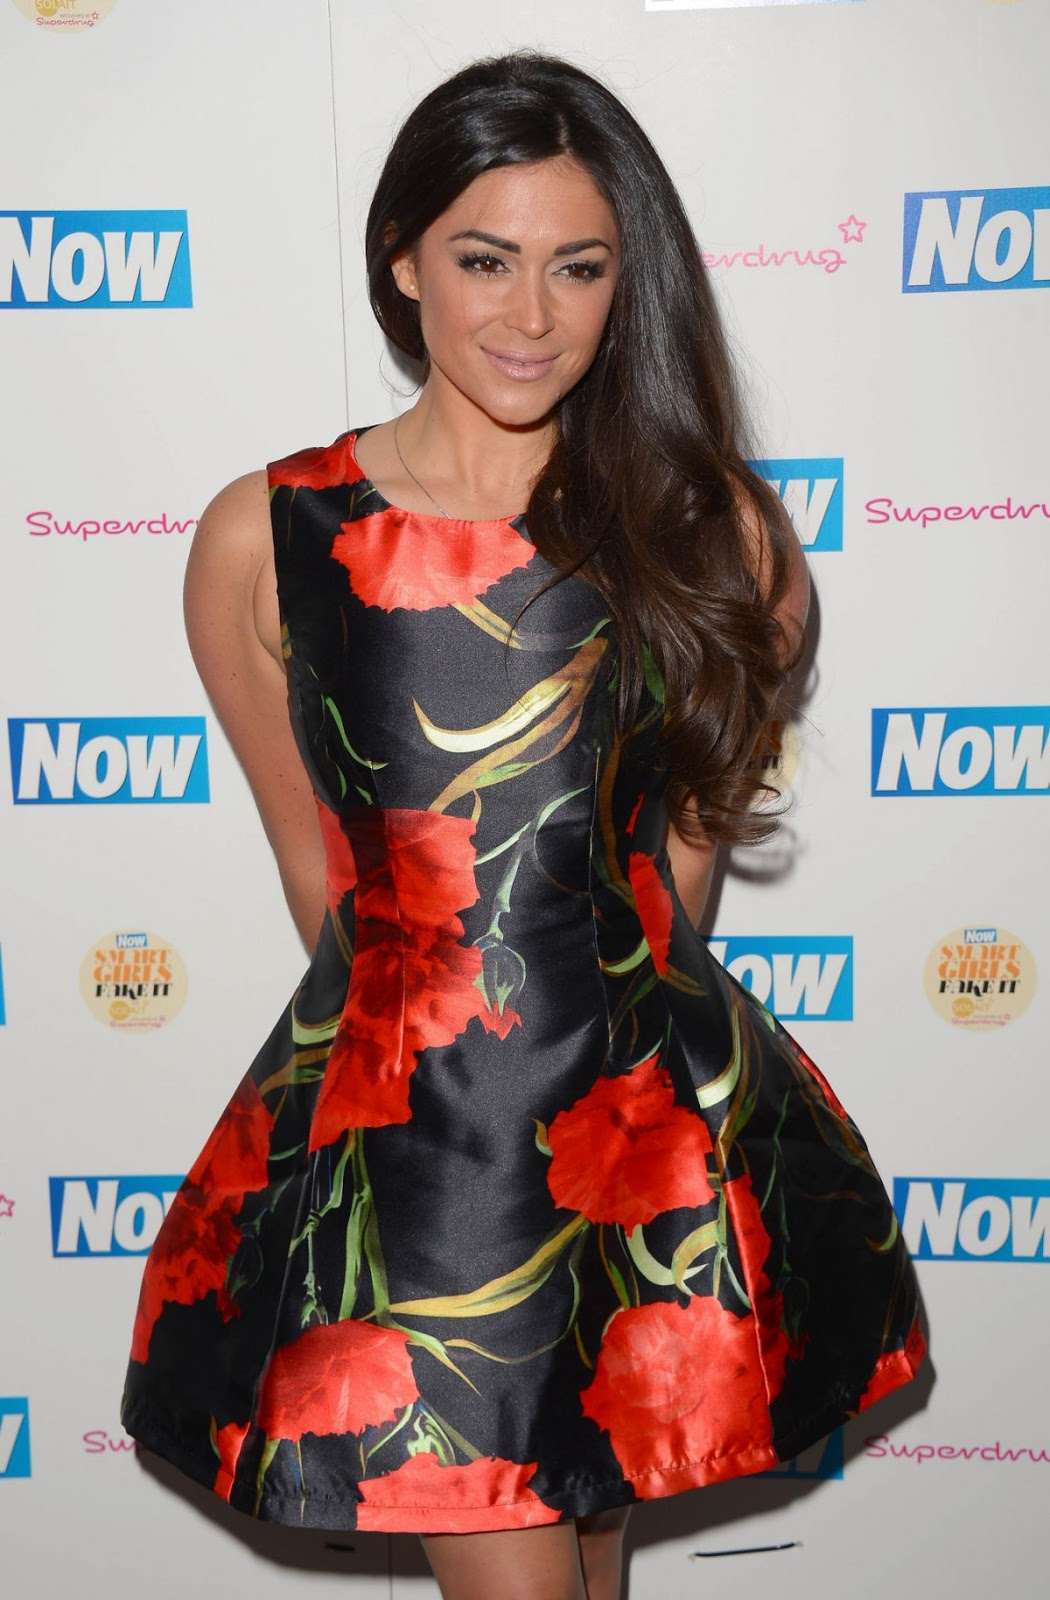 Casey Batchelor At Now Smart Girls Fake It Campaign With Superdrug Solait Launch Party In London